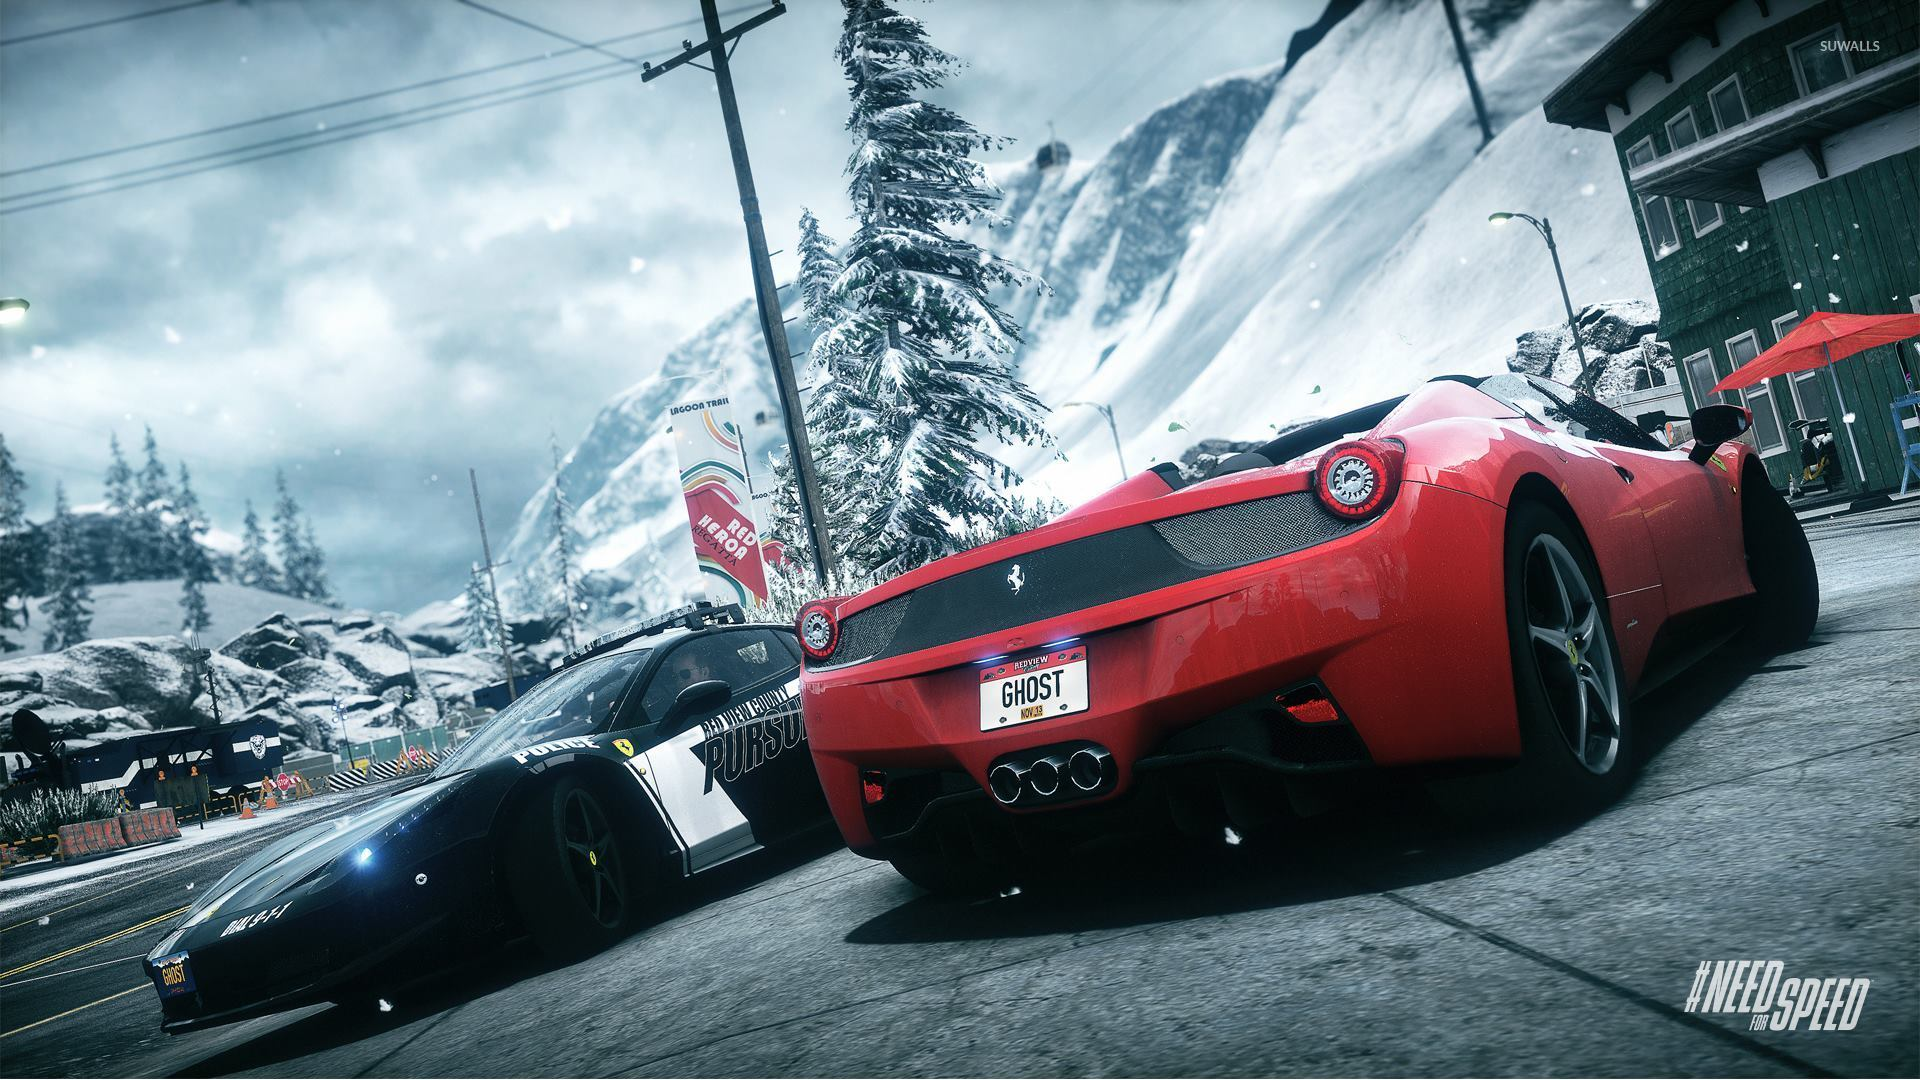 Need for speed rivals wallpapers wallpapersafari for Need for speed wallpaper